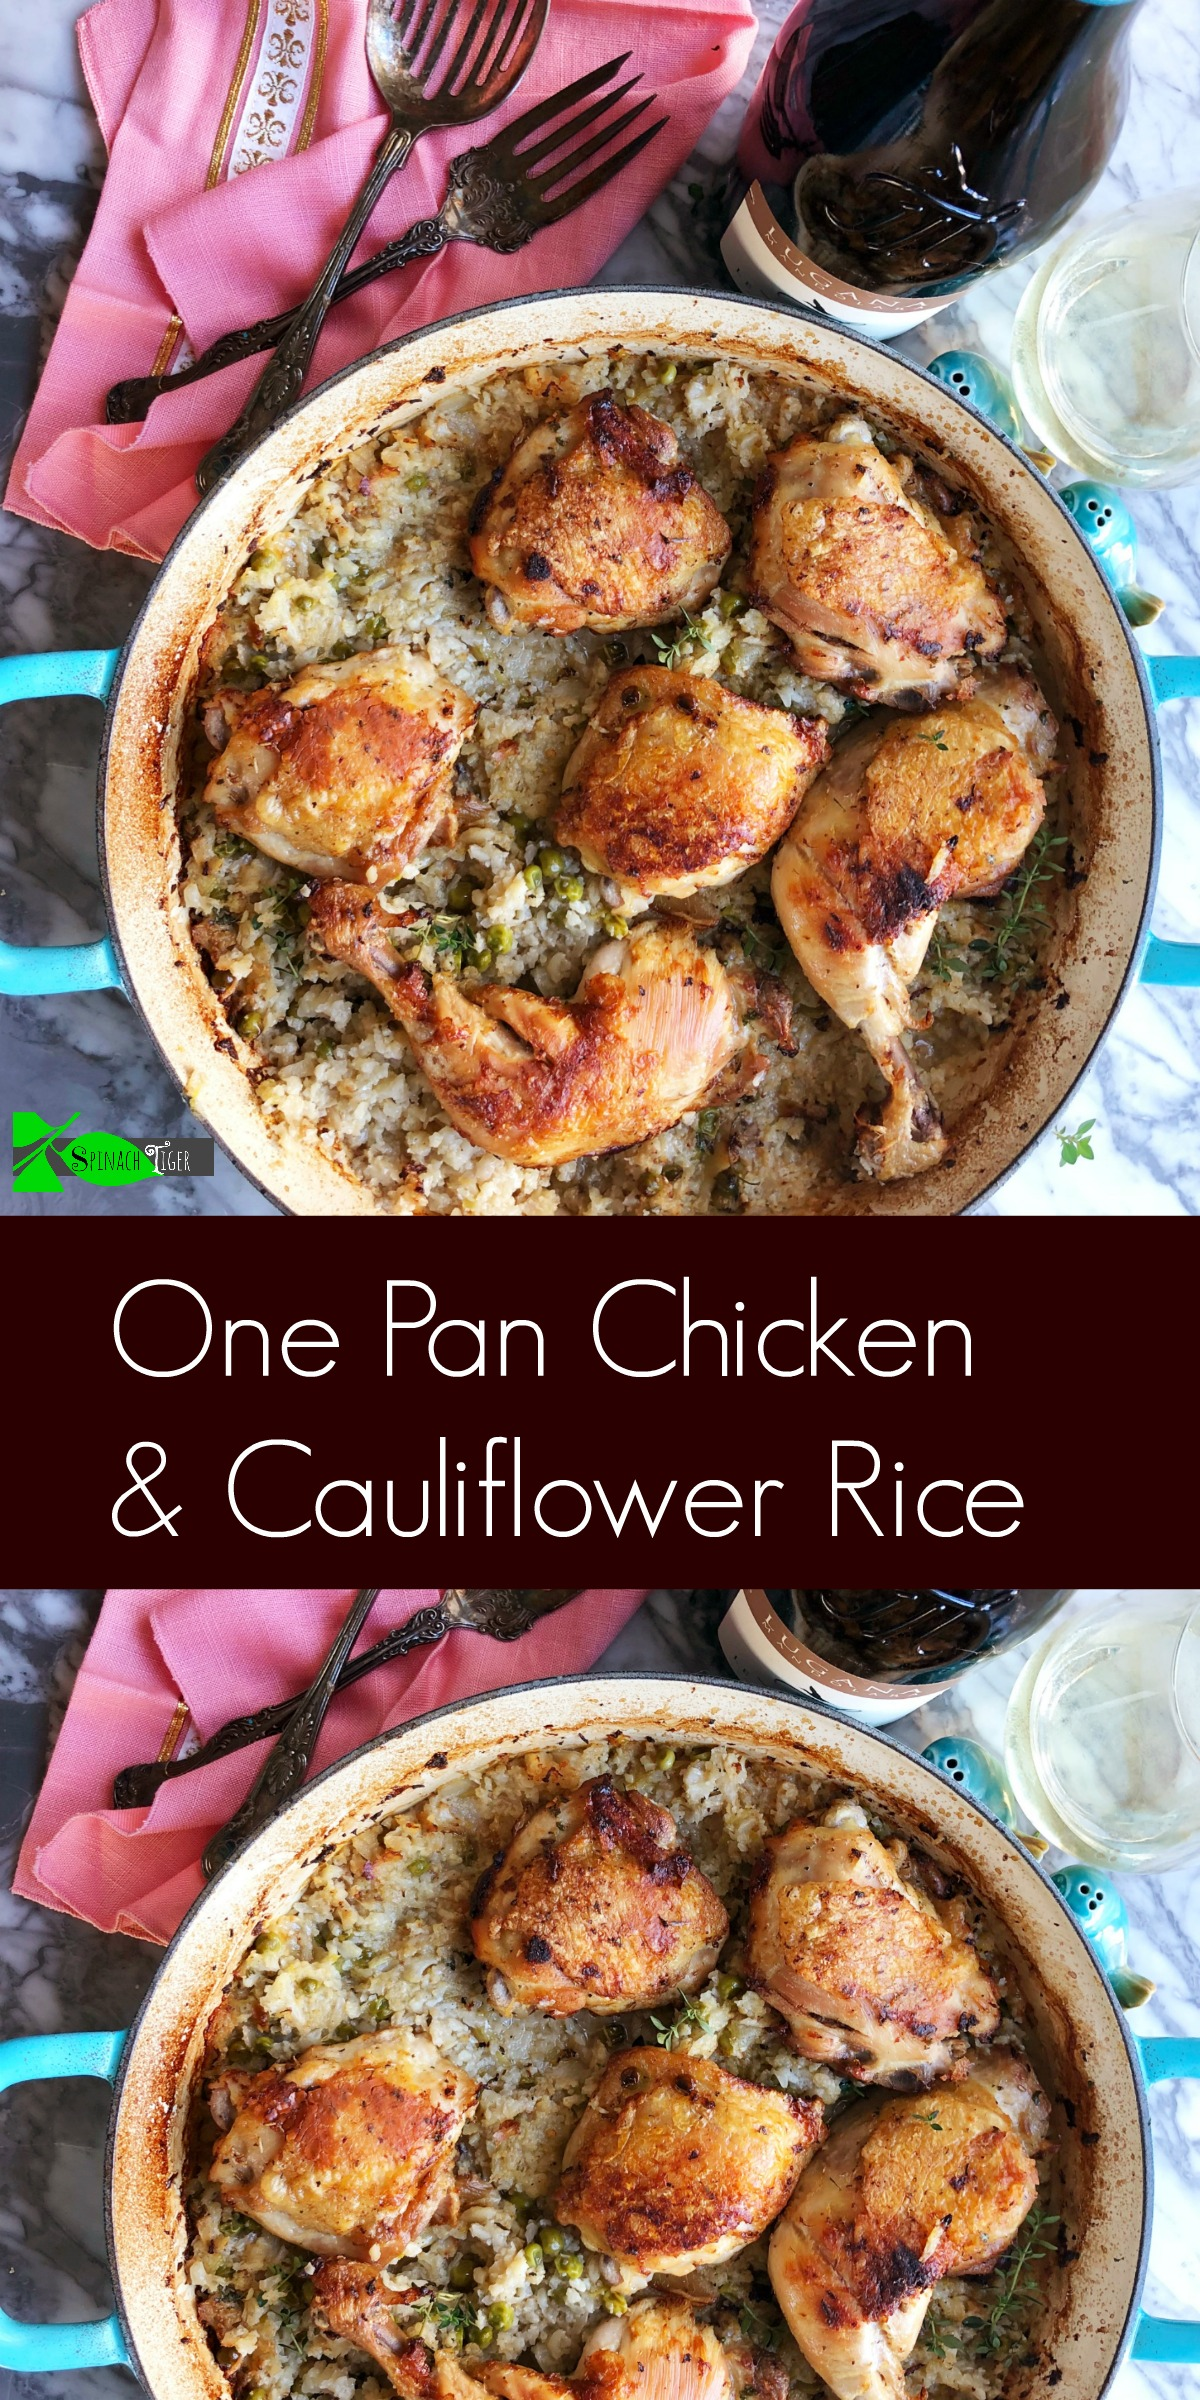 Recipes for Chicken Thighs from Spinach Tiger (Chicken and Cauliflower Rice)